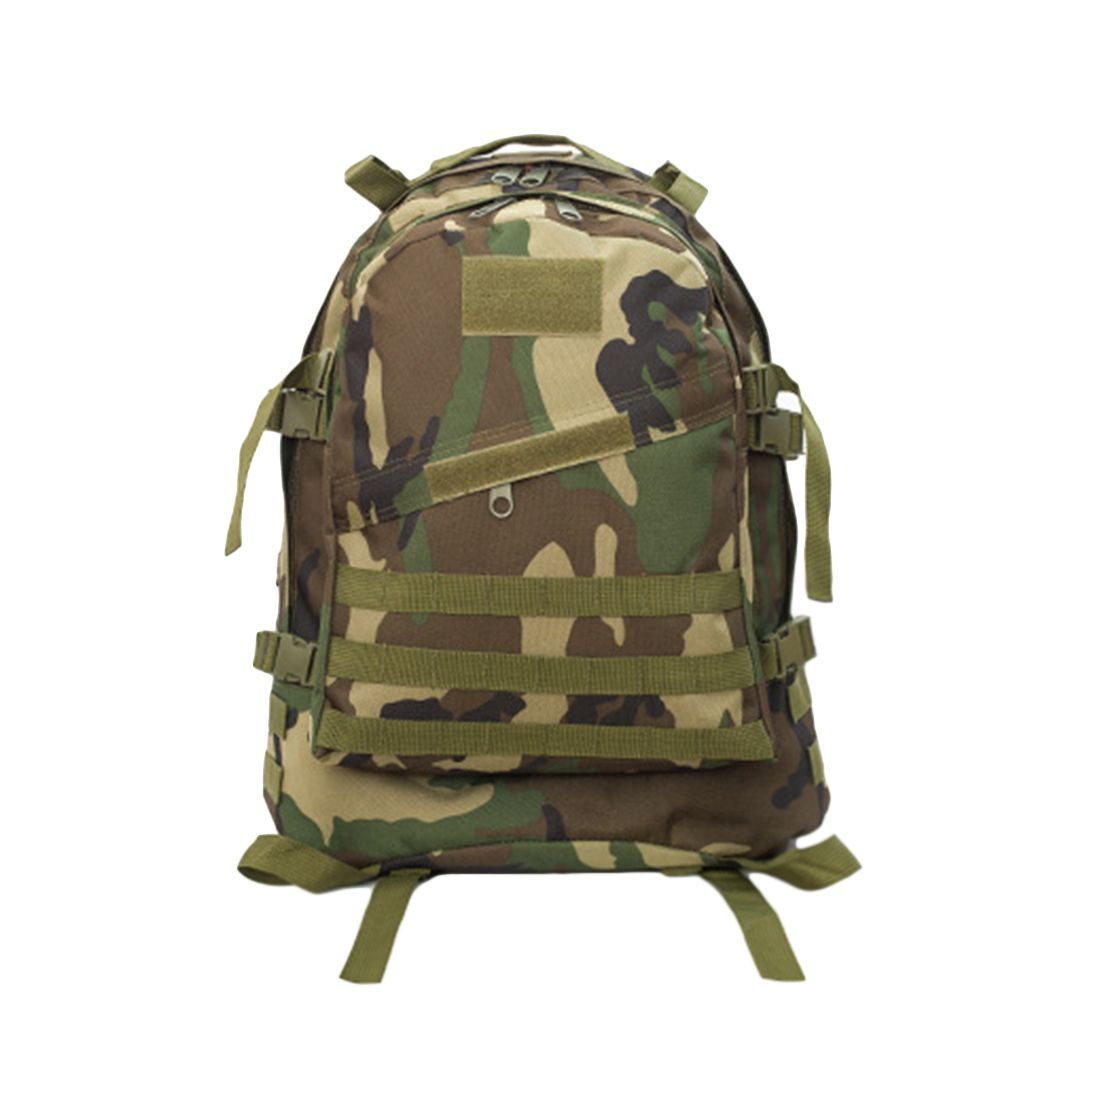 40L Outdoor Camouflage 3D Military Tactical Molle Backpack Rucksacks  Camping Hiking Trekking Bag  Affiliate 3fa18d68252d8